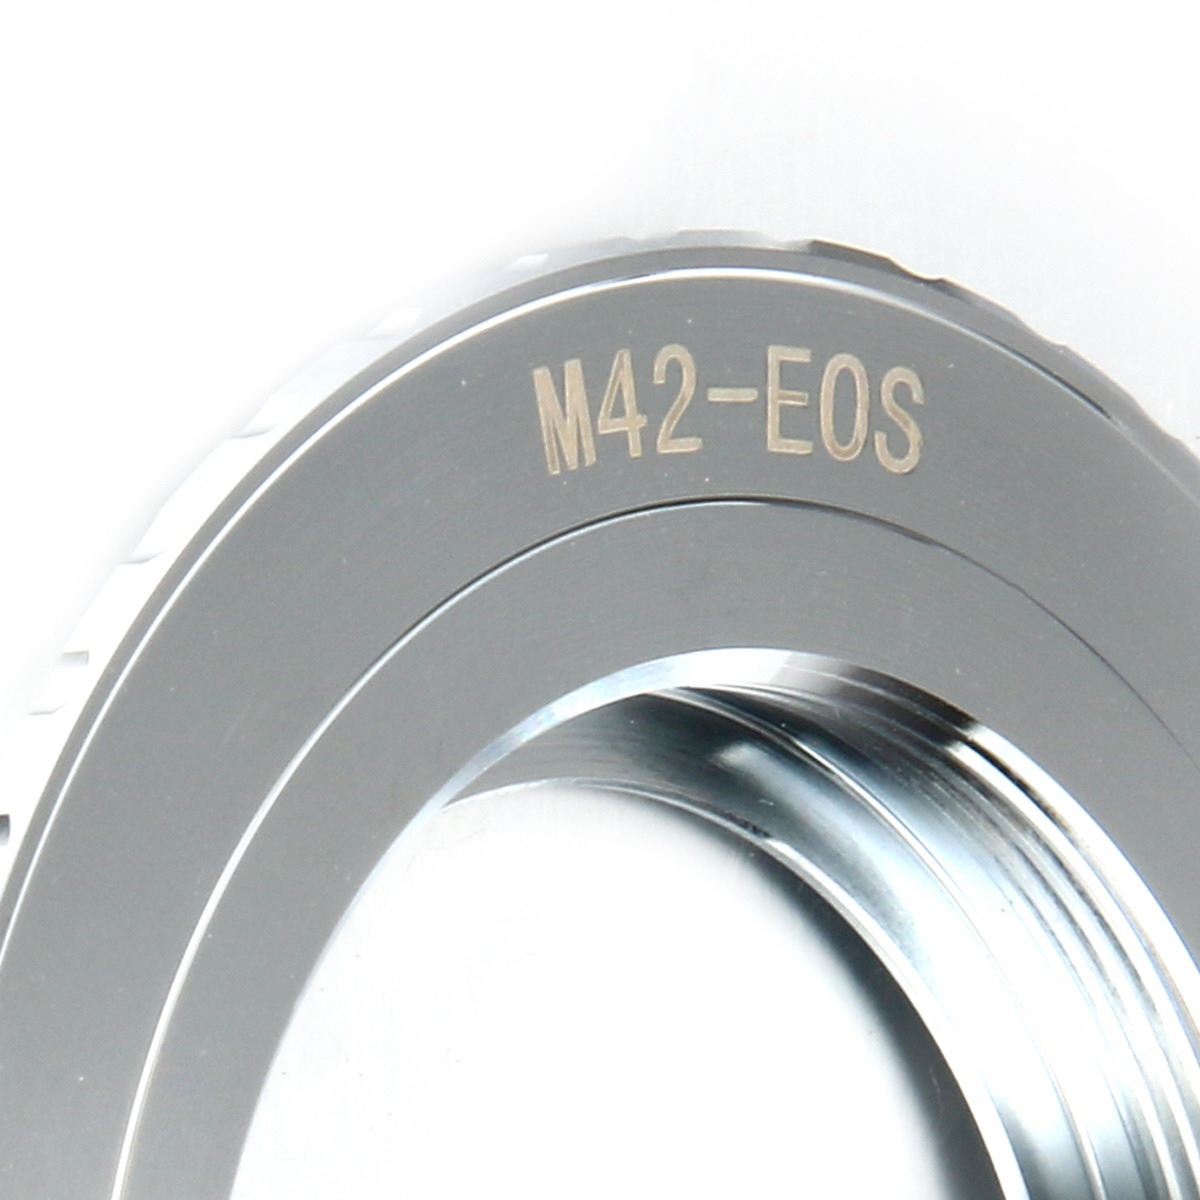 EMF AF Confirm Adapter For M42 Lens to Canon